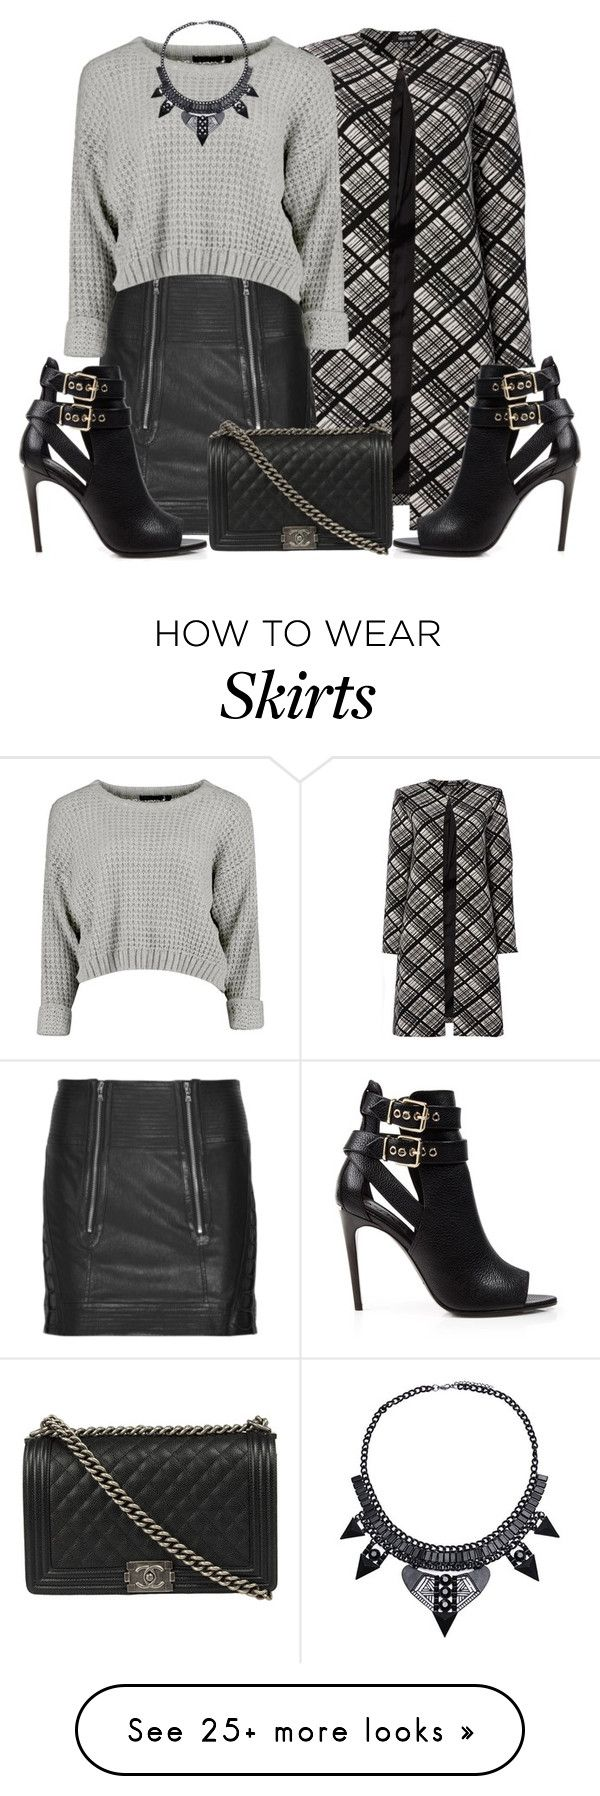 """Croped Sweater and Leather Skirt"" by queenvictorias on Polyvore featuring Ellen Tracy, Phi, Burberry, Chanel, women's clothing, women's fashion, women, female, woman and misses"